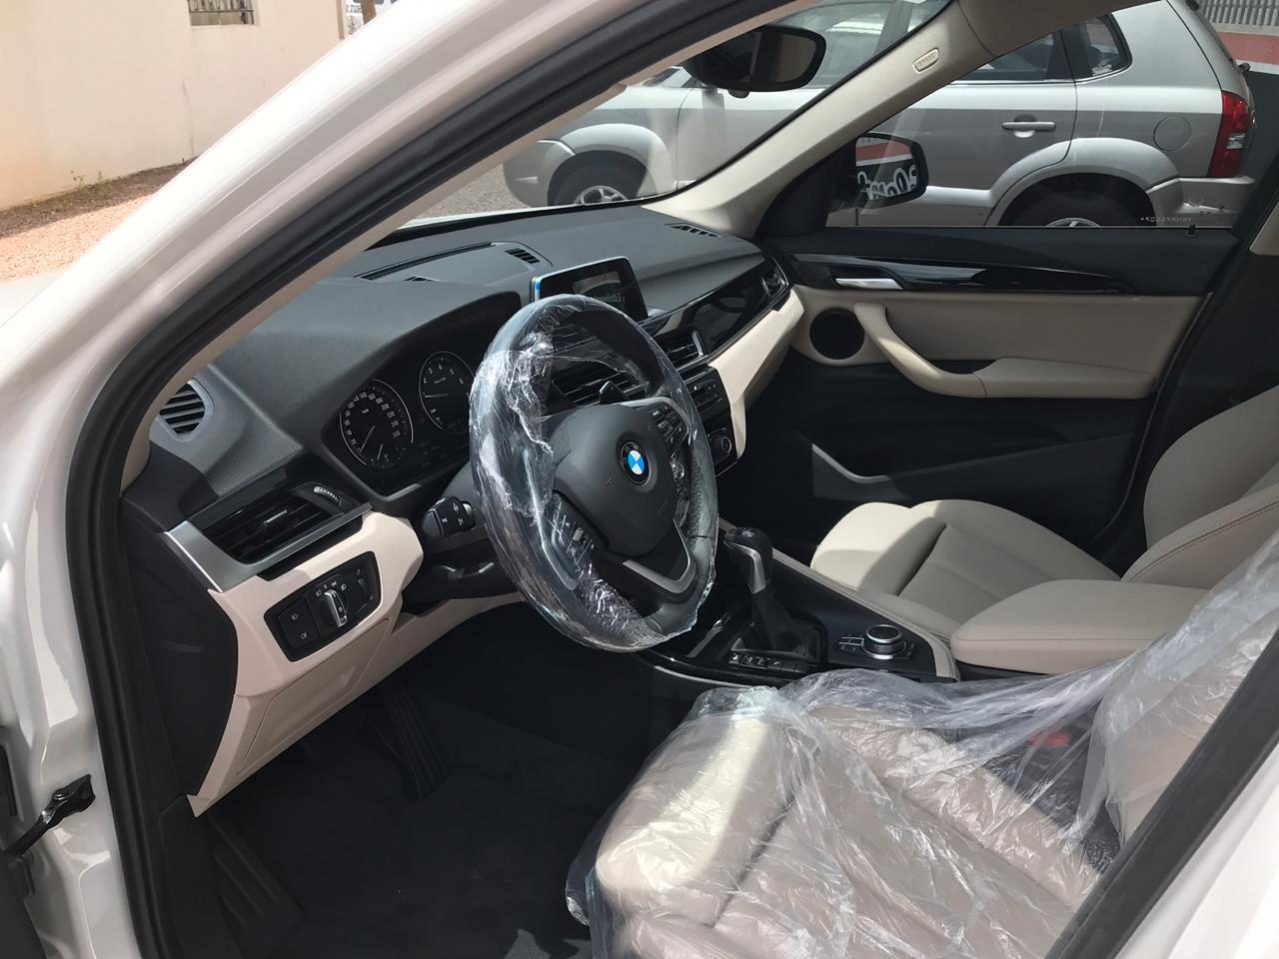 Talento-automotivo-cascavel-pr-bmw-x1-interior